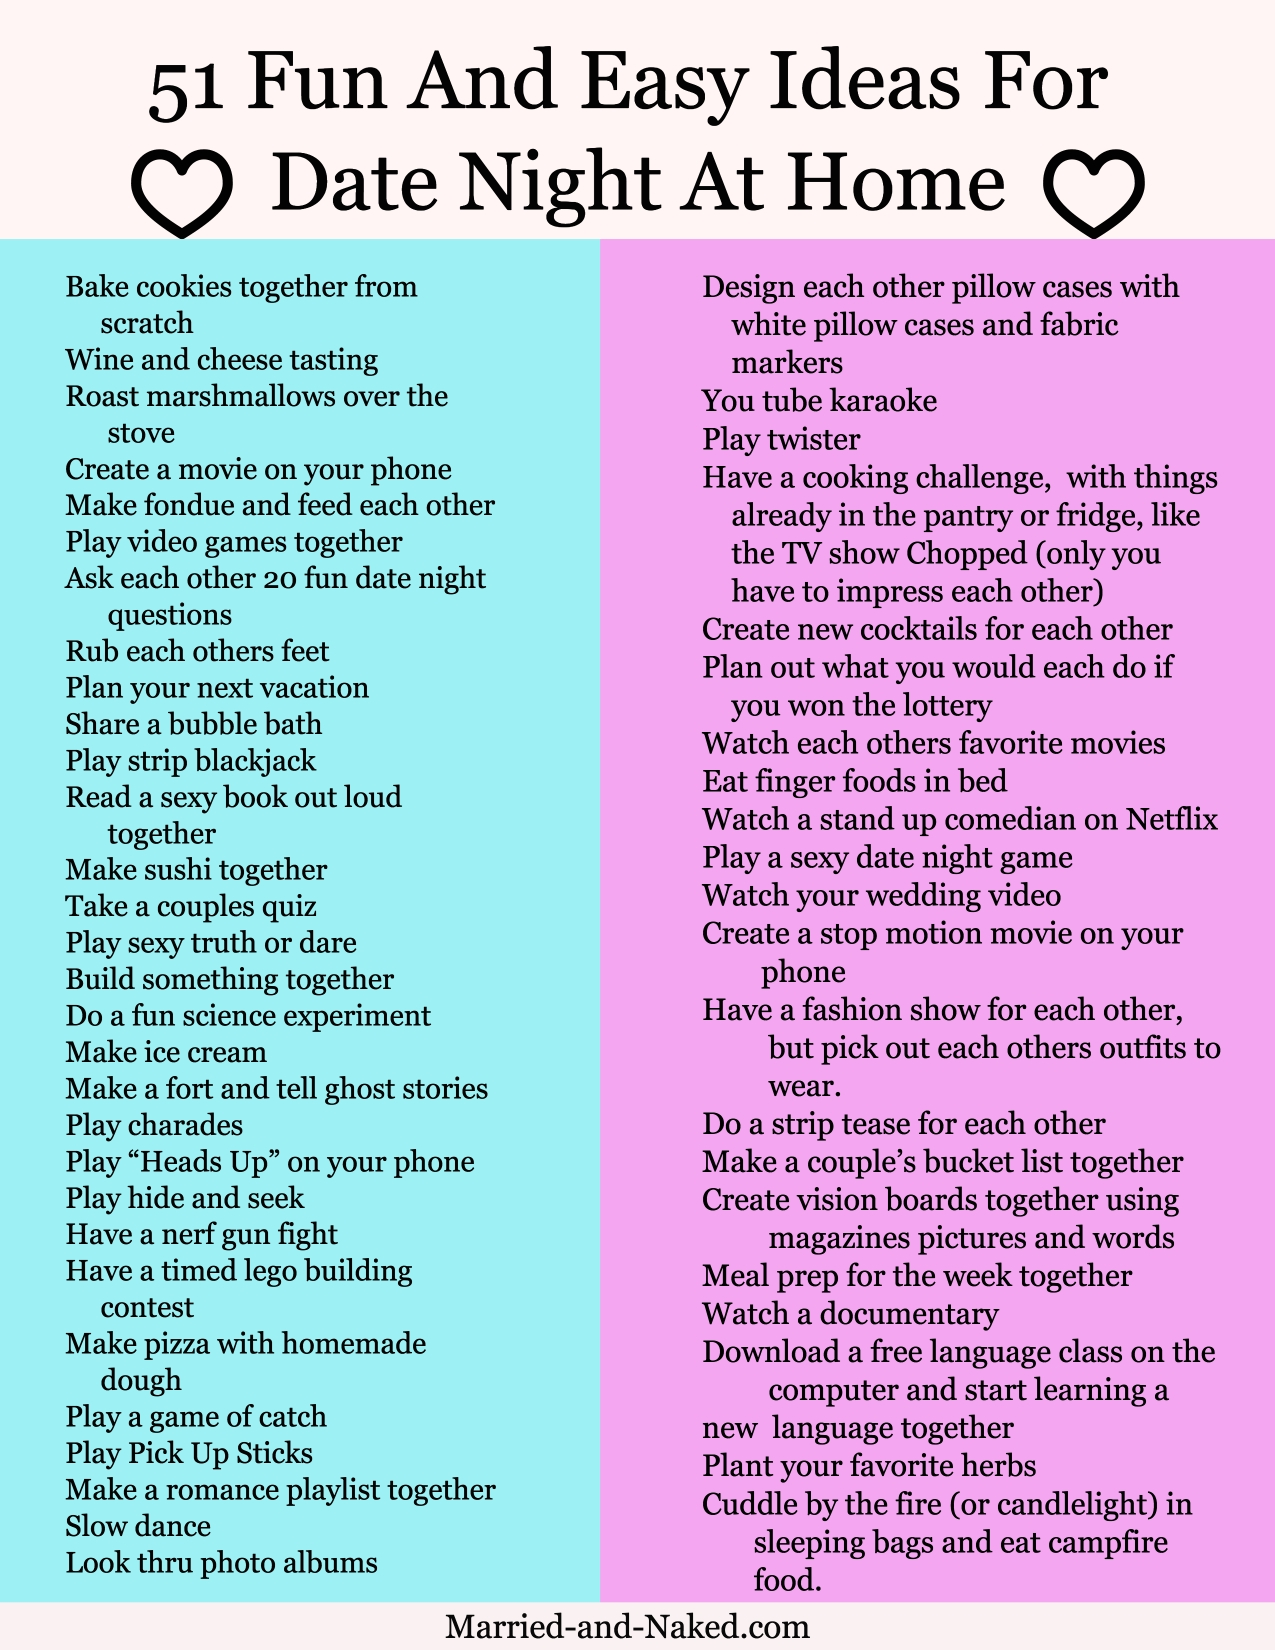 10 Cute Cheap Date Ideas For Married Couples date night questions for married couples married and naked idee 2